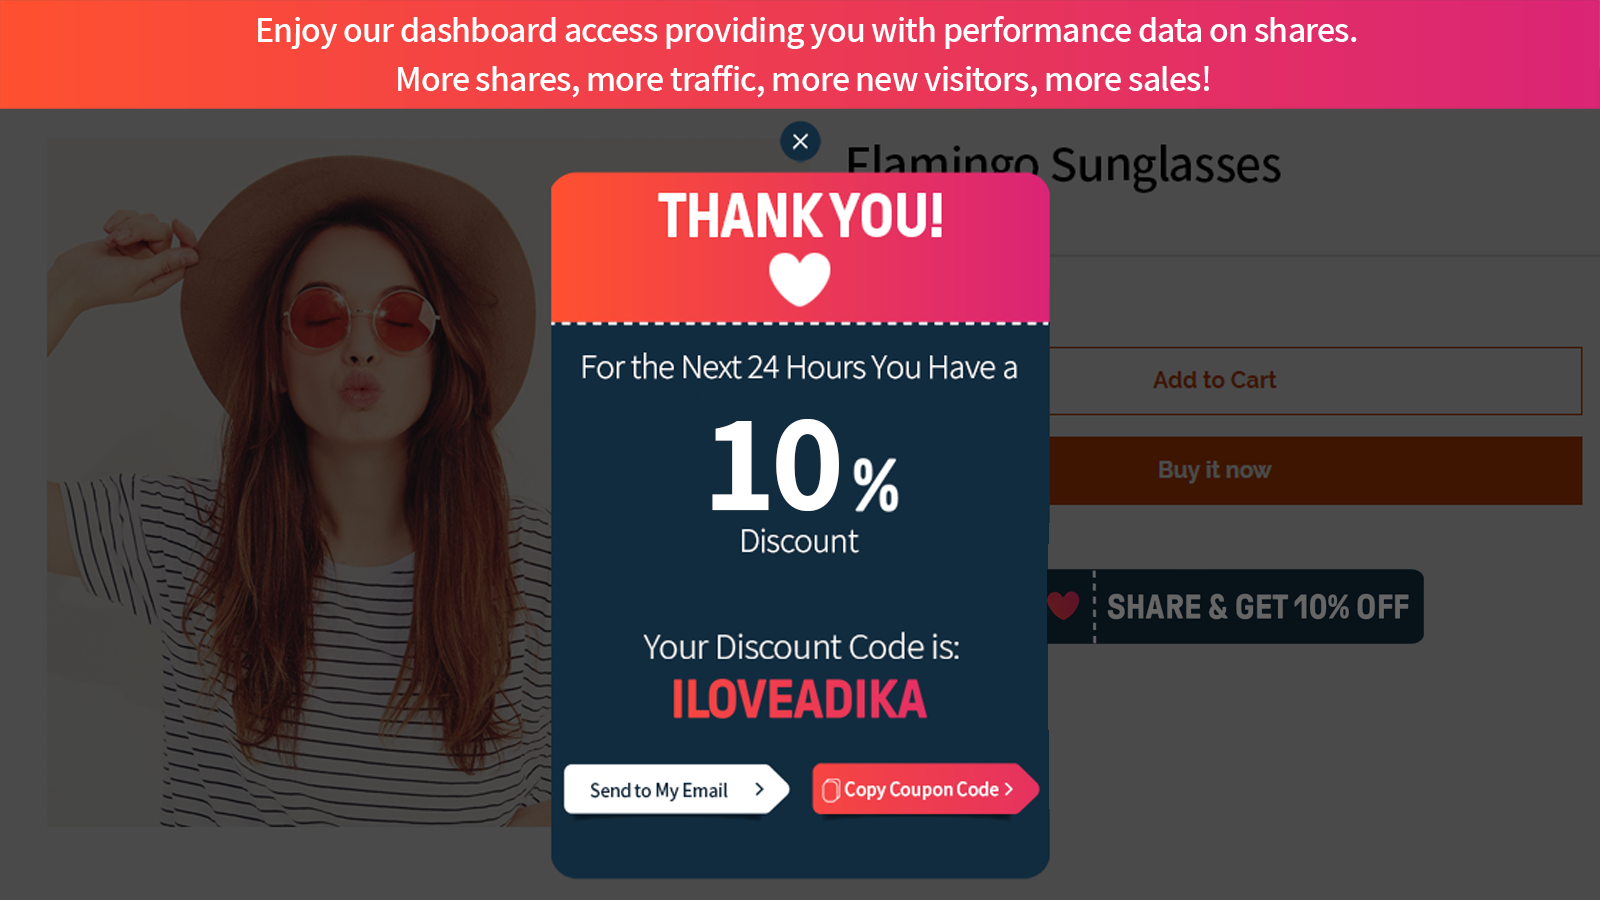 Thank you screen with coupon code